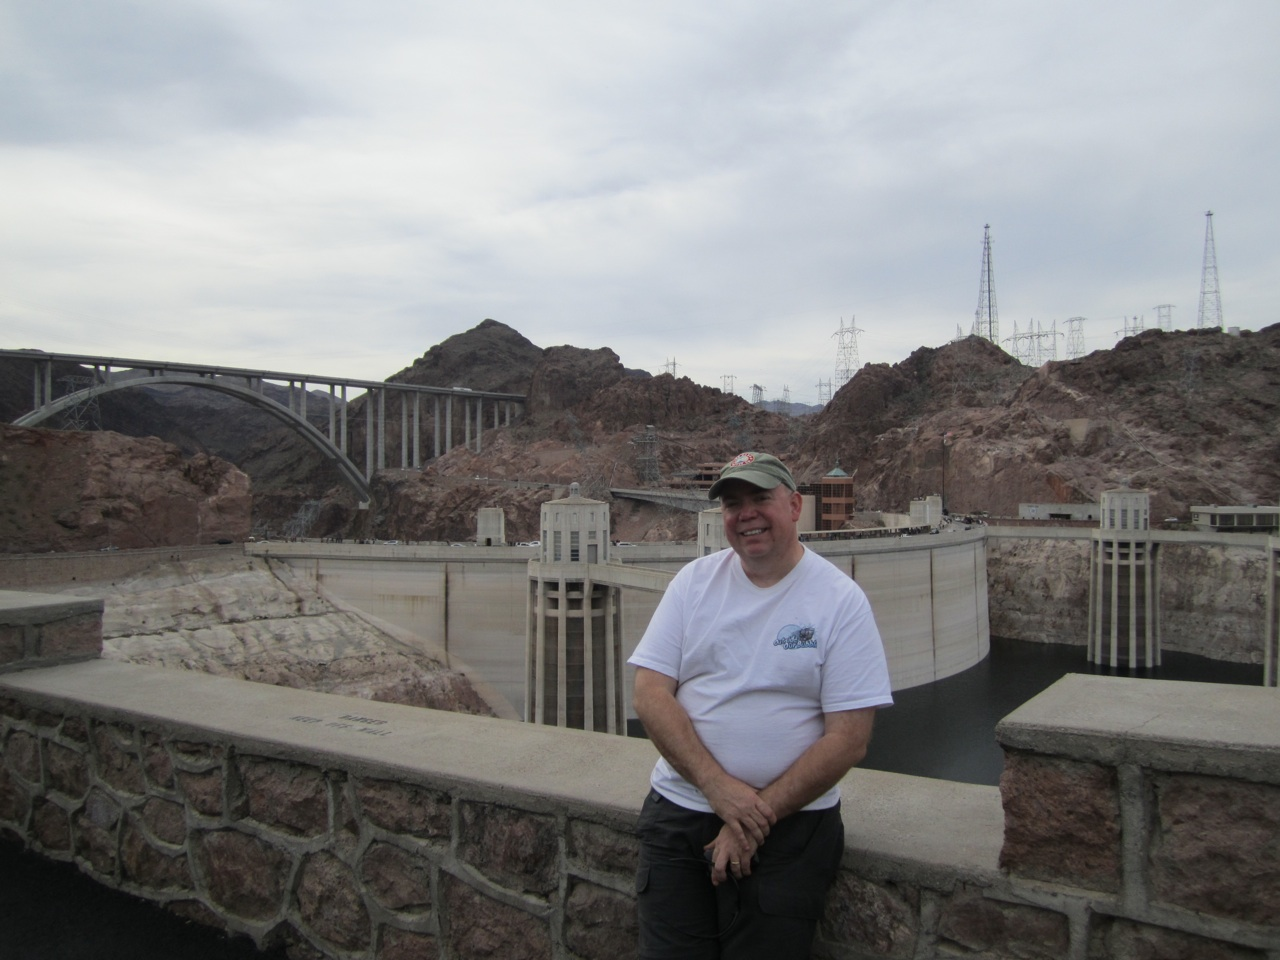 David, The Hoover Dam And The New Bypass Bridge